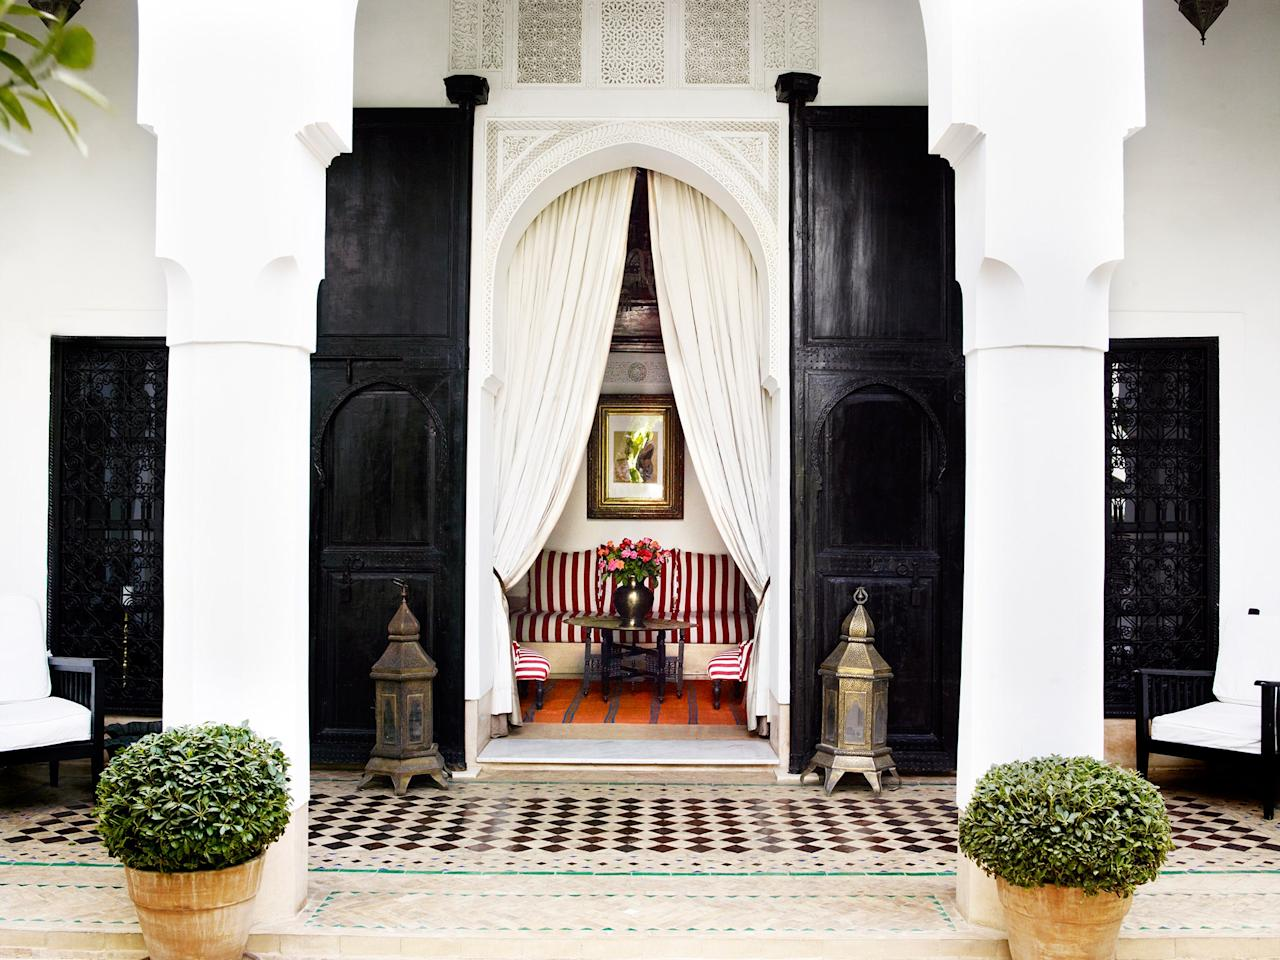 <p><strong>Set the scene for us.</strong><br> An incredibly refined take on a riad from an Englishman in Marrakech, Jasper Conran. This is an orange-blossom-scented, antique-filled retreat away from the hubbub. Serene, calm and elegant, this is a place to switch off from the noise of everyday life; to be still and silent.</p> <p><strong>What's the story with it?</strong><br> A converted 19th-century palace, the building had fallen into disrepair until British designer Jasper Conran happened upon it; this is his first foray into the hotel world after dreaming about owning one since he was a kid. Yet it doesn't really feel like a hotel, more like the exquisite home of a wealthy collector with impeccable taste. It's liberally dotted with the designer's personal collection of art and antiques, but still manages to feel pared-back—as if a Scandinavian fairy came down and waved all the potential clutter away.</p> <p><strong>Sounds lovely. Tell us about the bedrooms.</strong><br> The Casablanca Suite is presided over by a spectacular painting of one of the maharajas of India. Its king-sized four-poster bed is draped in snowy voile, and it has a hand-painted ceiling inlaid with gold leaf and a deep, caramel-toned tadelakt tub. There are more antiques in here than any of the other rooms, so if you're feeling clumsy, choose the Zagora Suite—smaller, but light and airy, with the added bonus of a leafy private terrace that leads directly onto the pool.</p> <p><strong>How about the food and drink?</strong><br> The bar, with its crimson- and- white-striped lounge chairs, is a brilliant spot for a martini before dinner, or a digestif before bed, or for settling in with a book and glass of meaty local red on a chilly winter's day. The dining room feels more summery—its wall of glass doors open directly onto the lush green courtyard. It serves traditional Moroccan home cooking, but you can also get a decent steak frites if you want.</p> <p><strong>Does anything stand out about the s